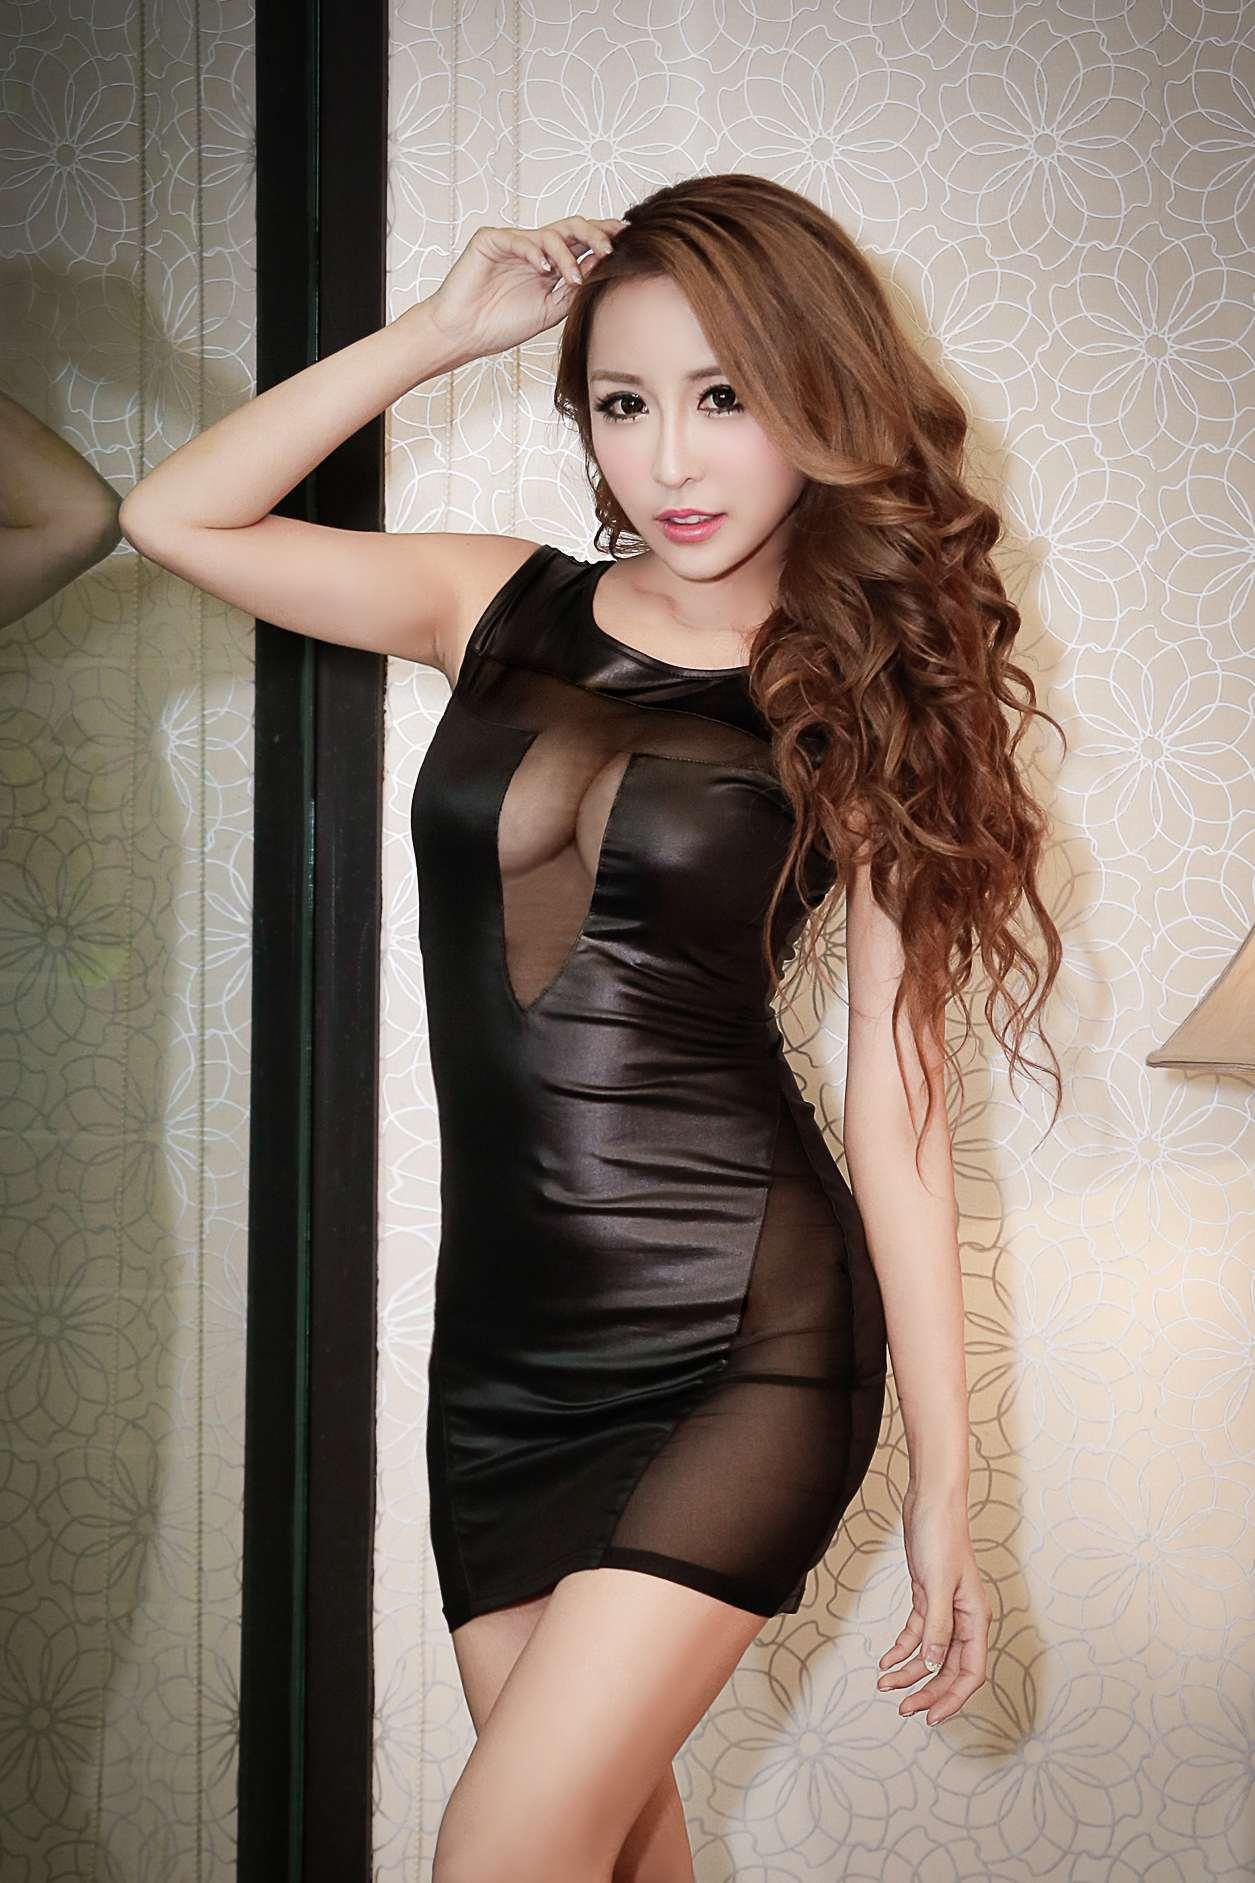 nude korean girls in hot langera